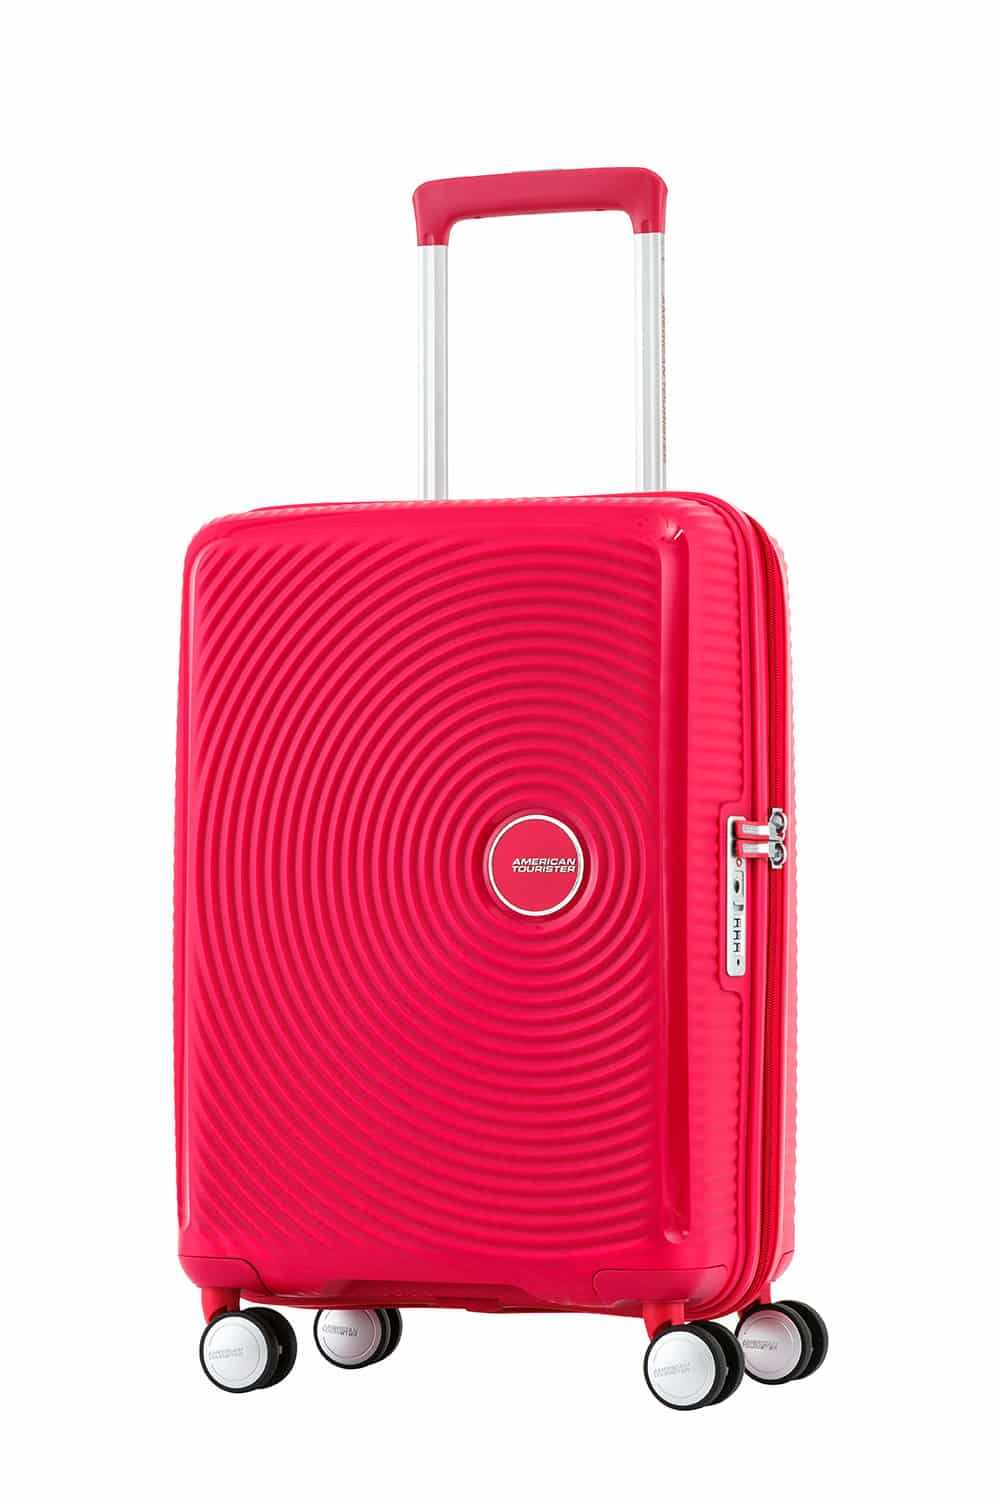 American-Tourister-Curio-Spinner-25-Inch